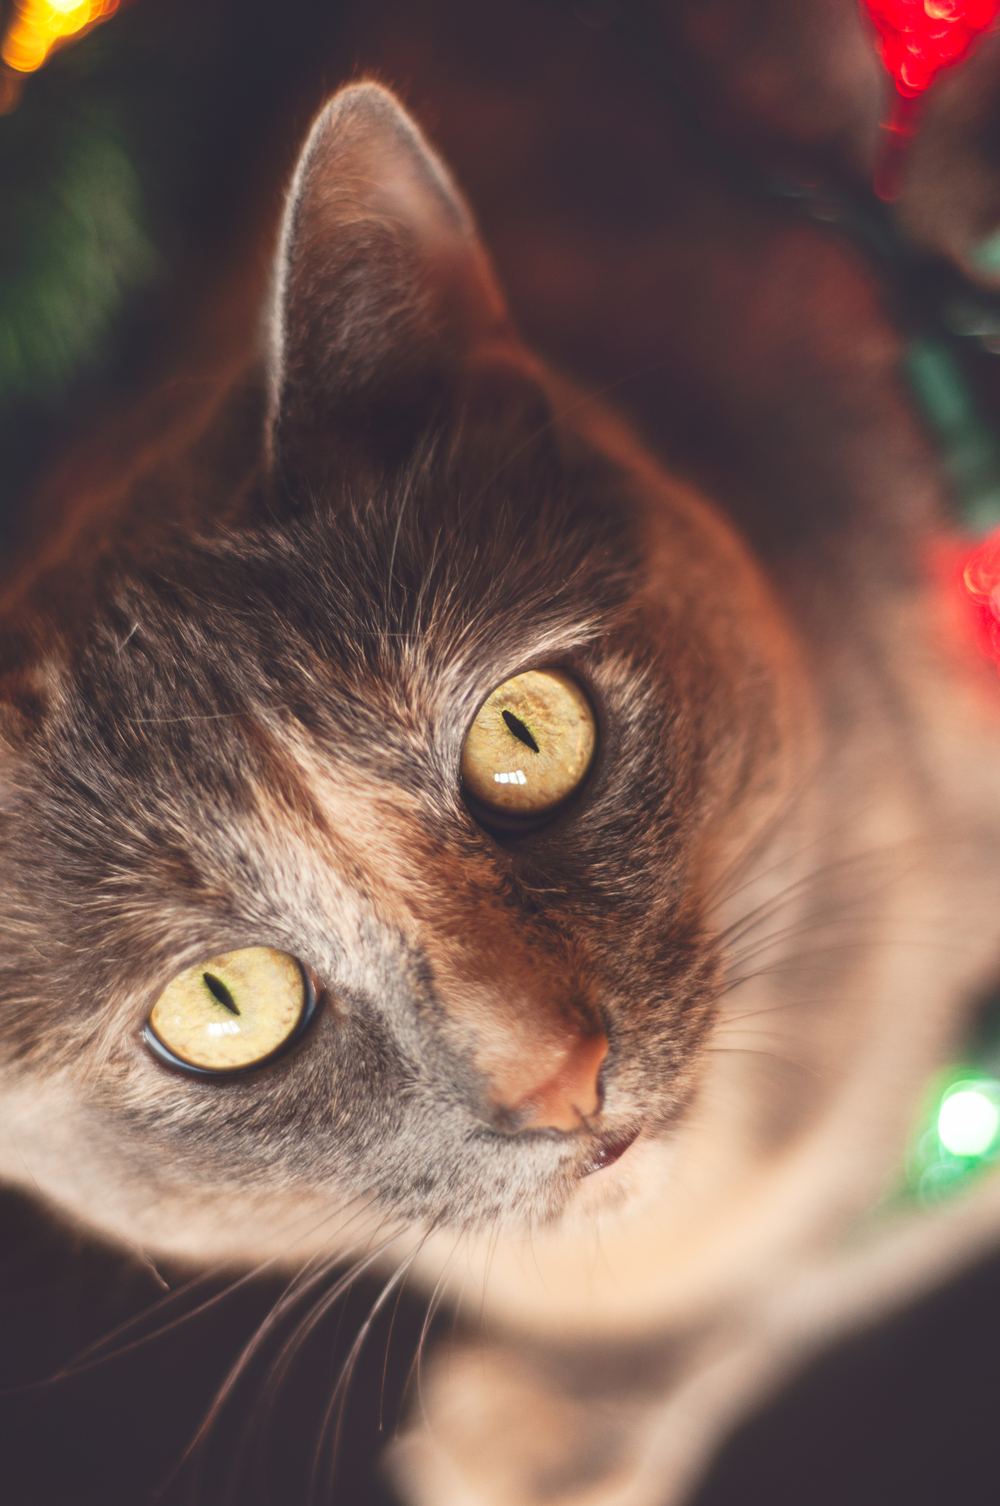 pet-photography-studio-natural-light-lifestyle-cat-closeup-holiday-long-island-photographer-digital.jpg